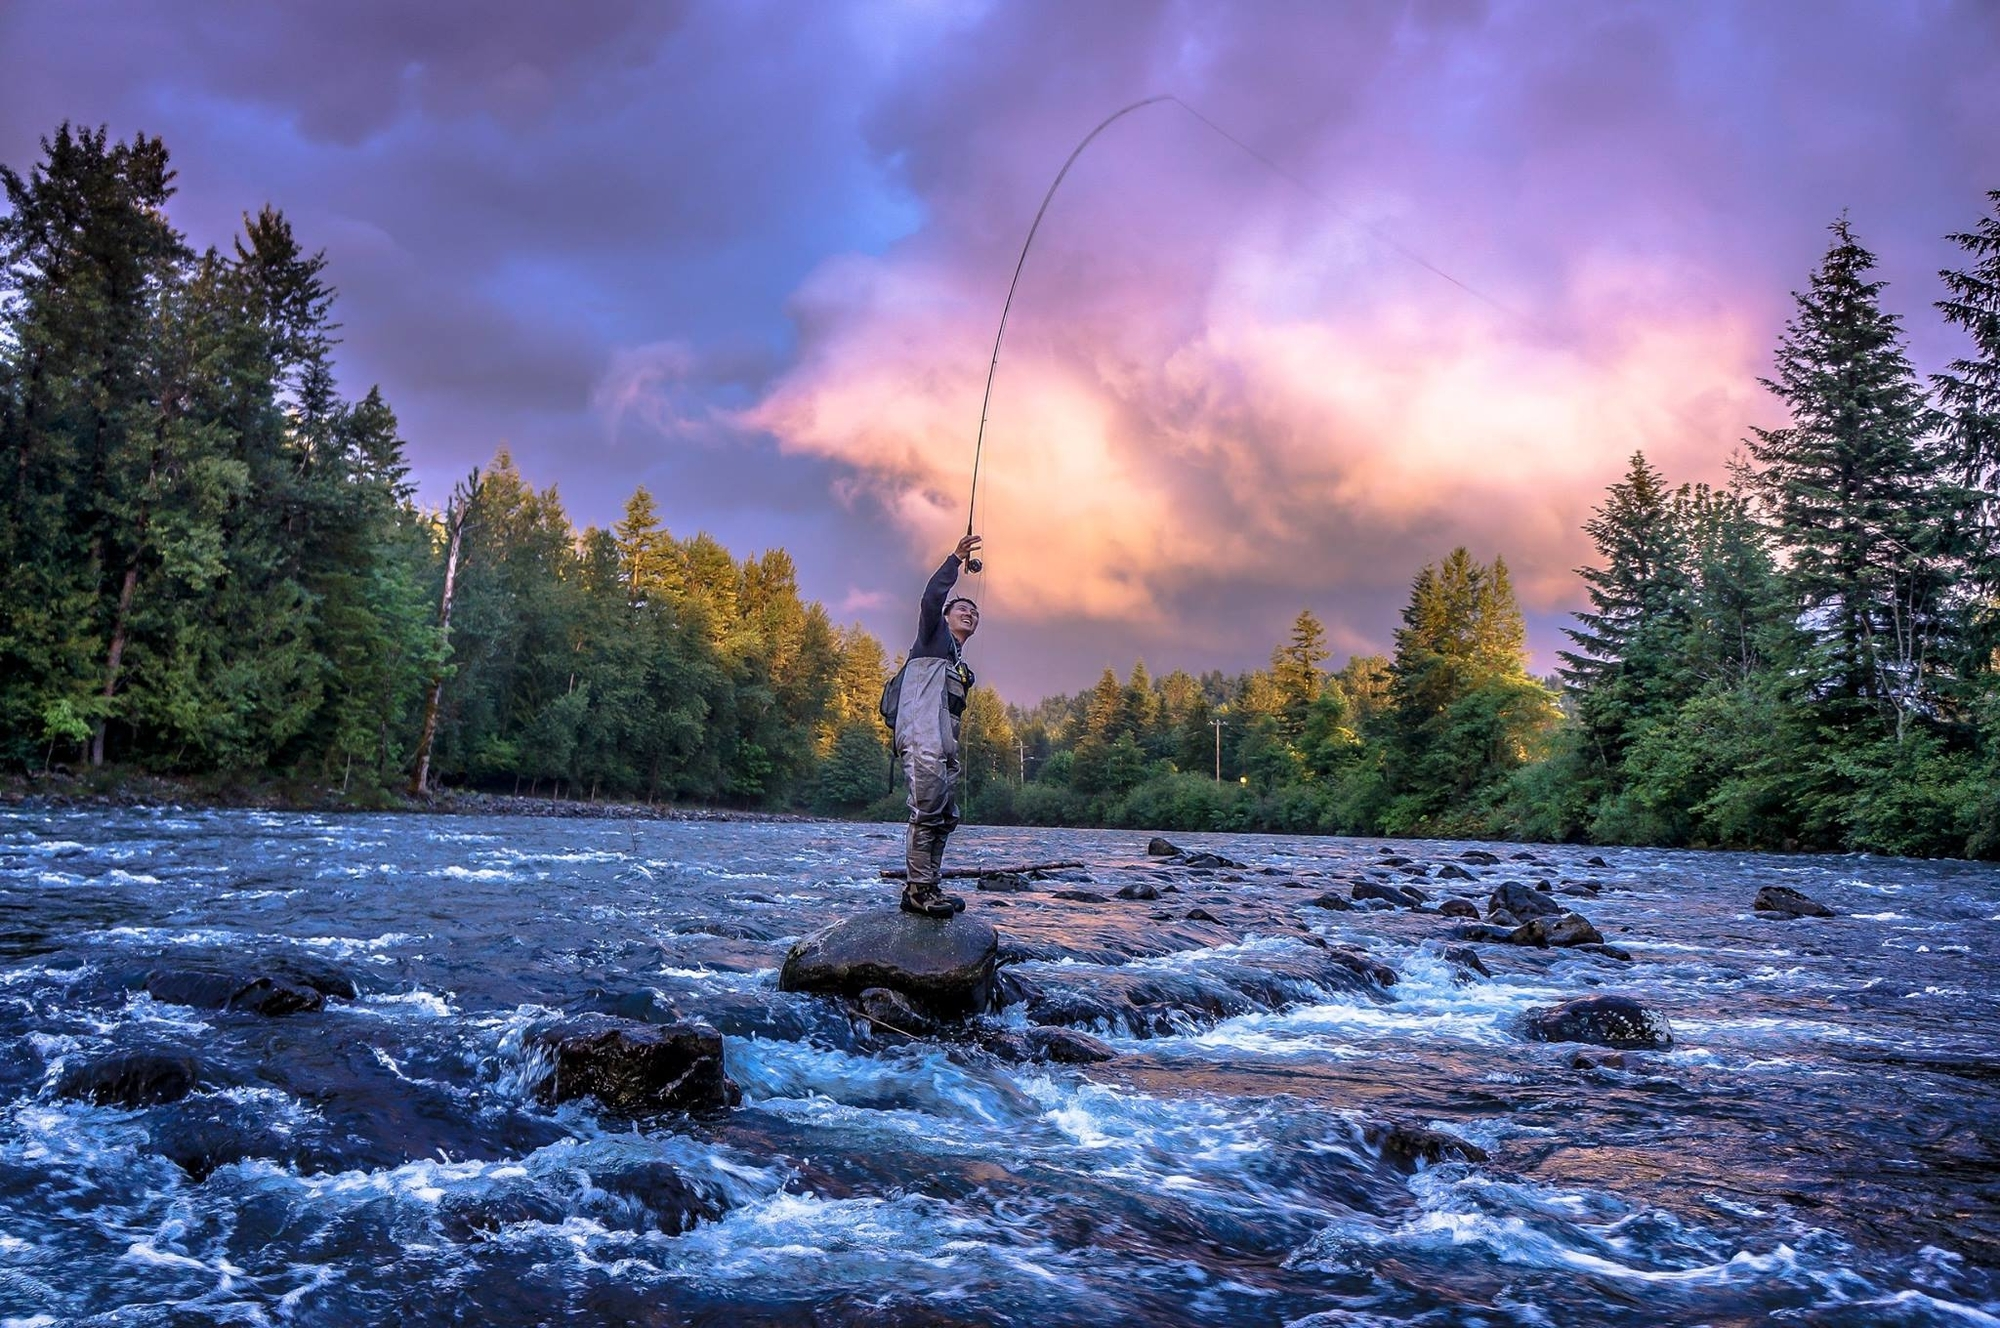 This image, captured by Joey Mara, shows angler Josh Lo hooked up to a native cutthroat during golden hour on the Snoqualmie River, shortly after taking a dip in the drink.